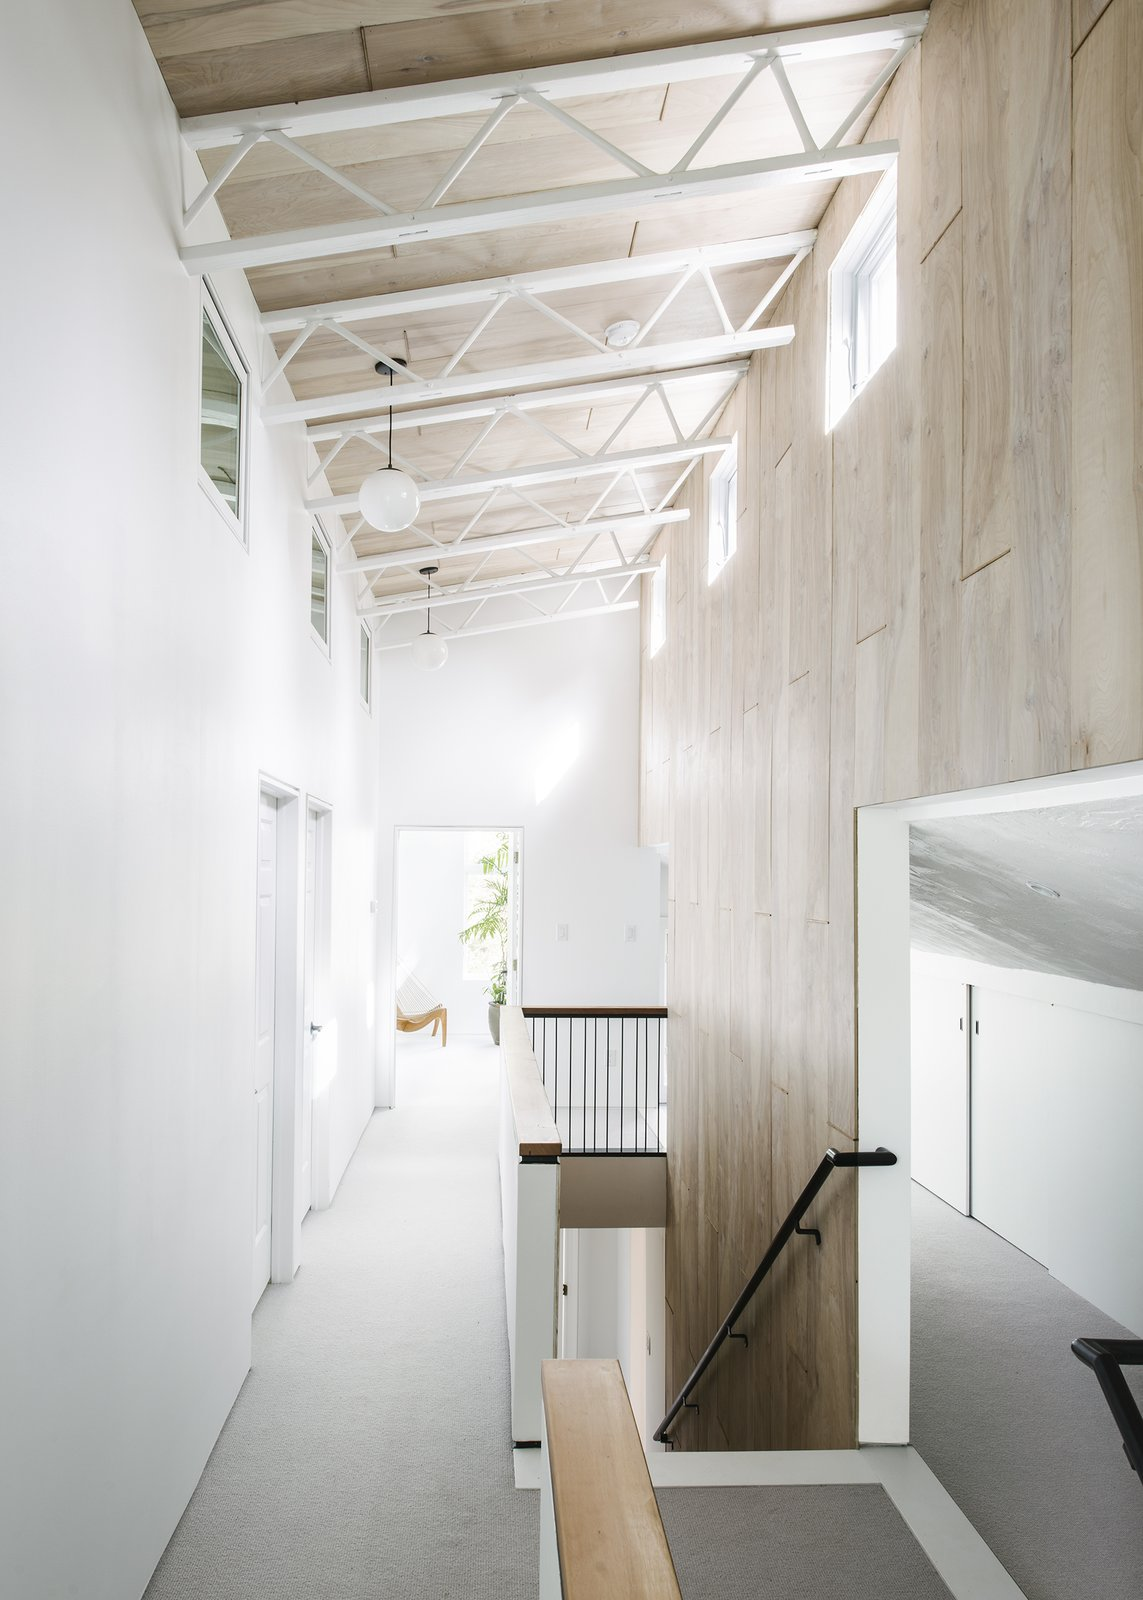 The birch plywood of the back stairs and loft ceiling is laid in a large tile pattern and stained with a varying amount of white sheen. Each line of tiling connects the spacing of the trusses to each stair tread to create a unified frame that one moves through.